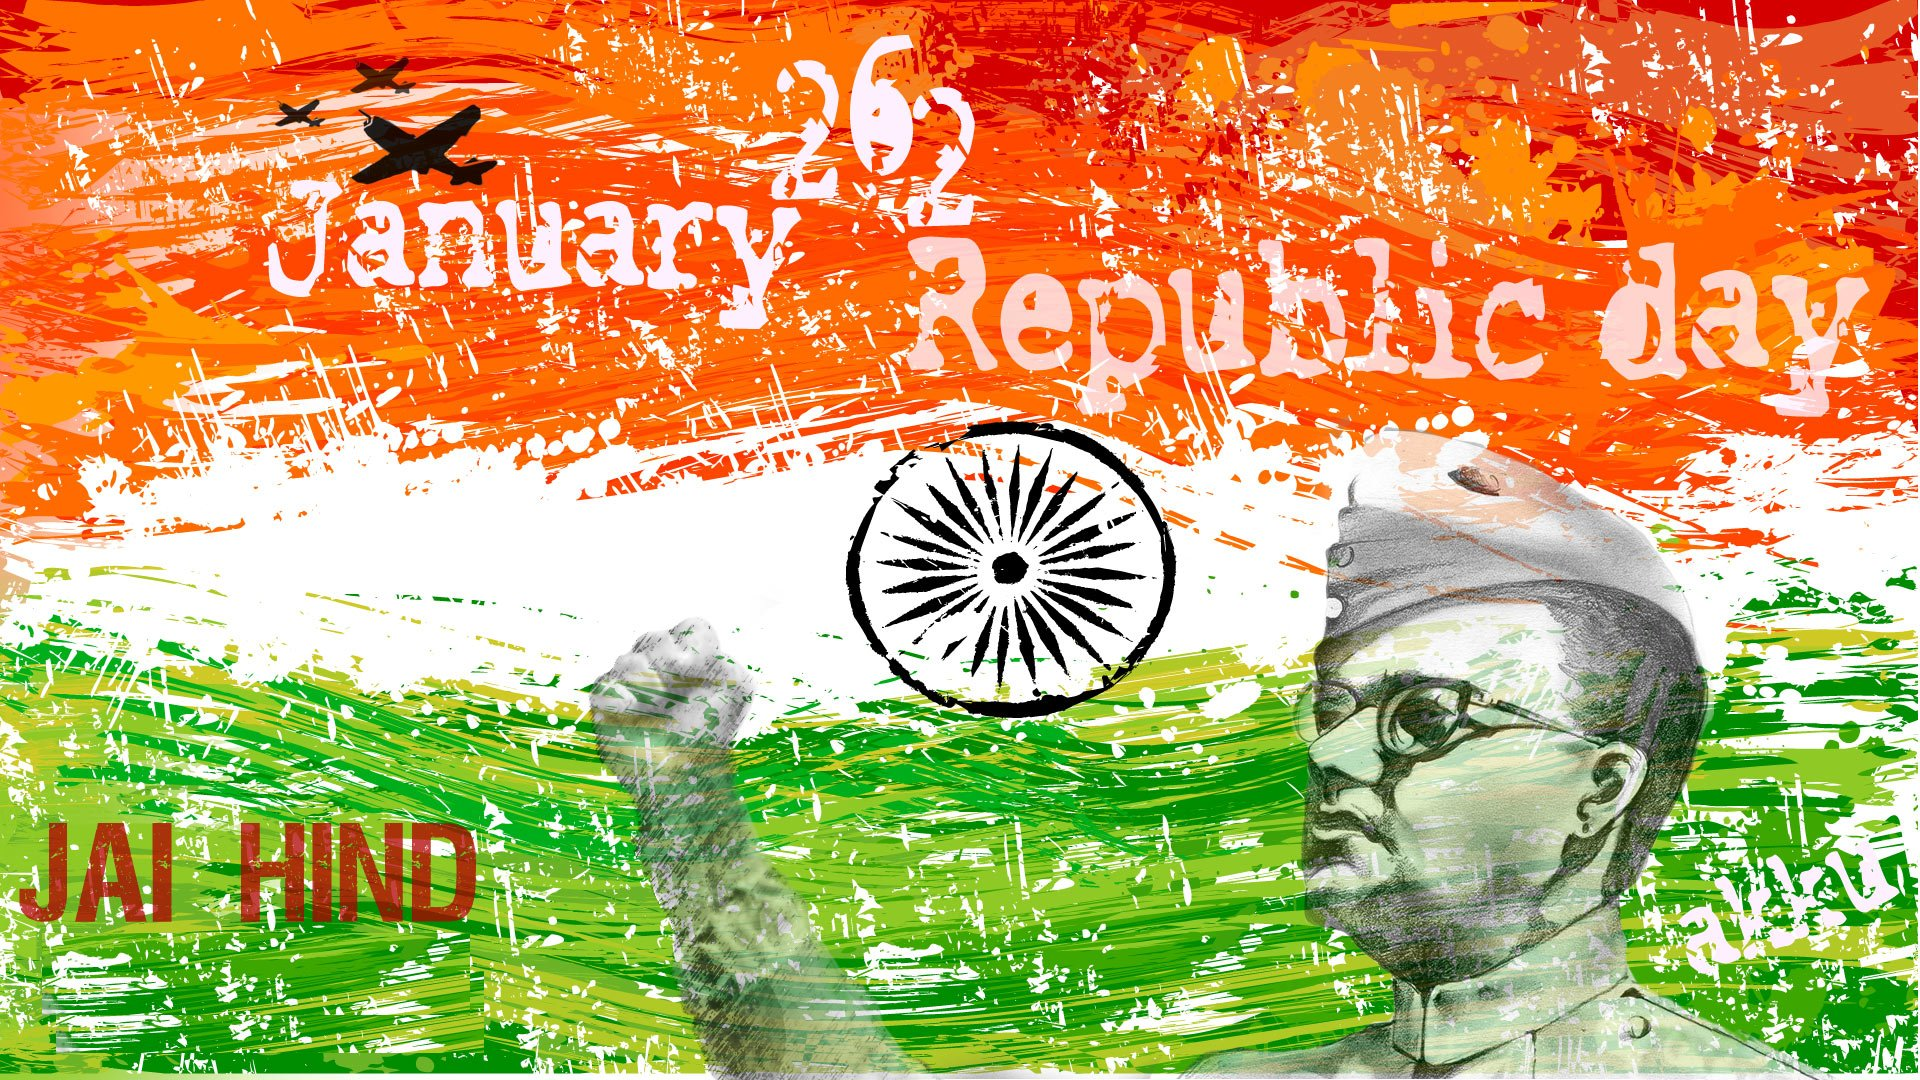 Wallpaper download republic day - National Flag Of India